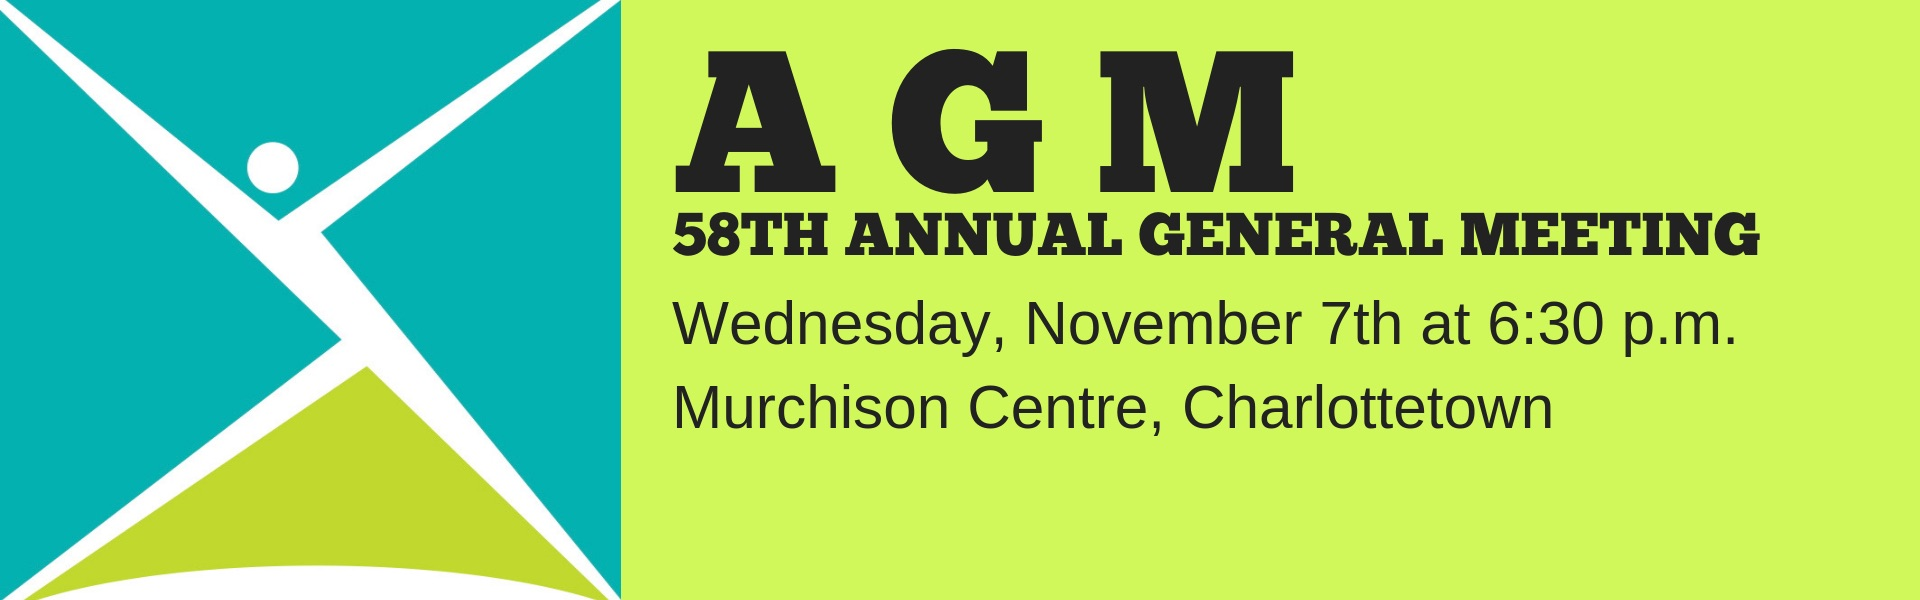 58th Annual General Meeting